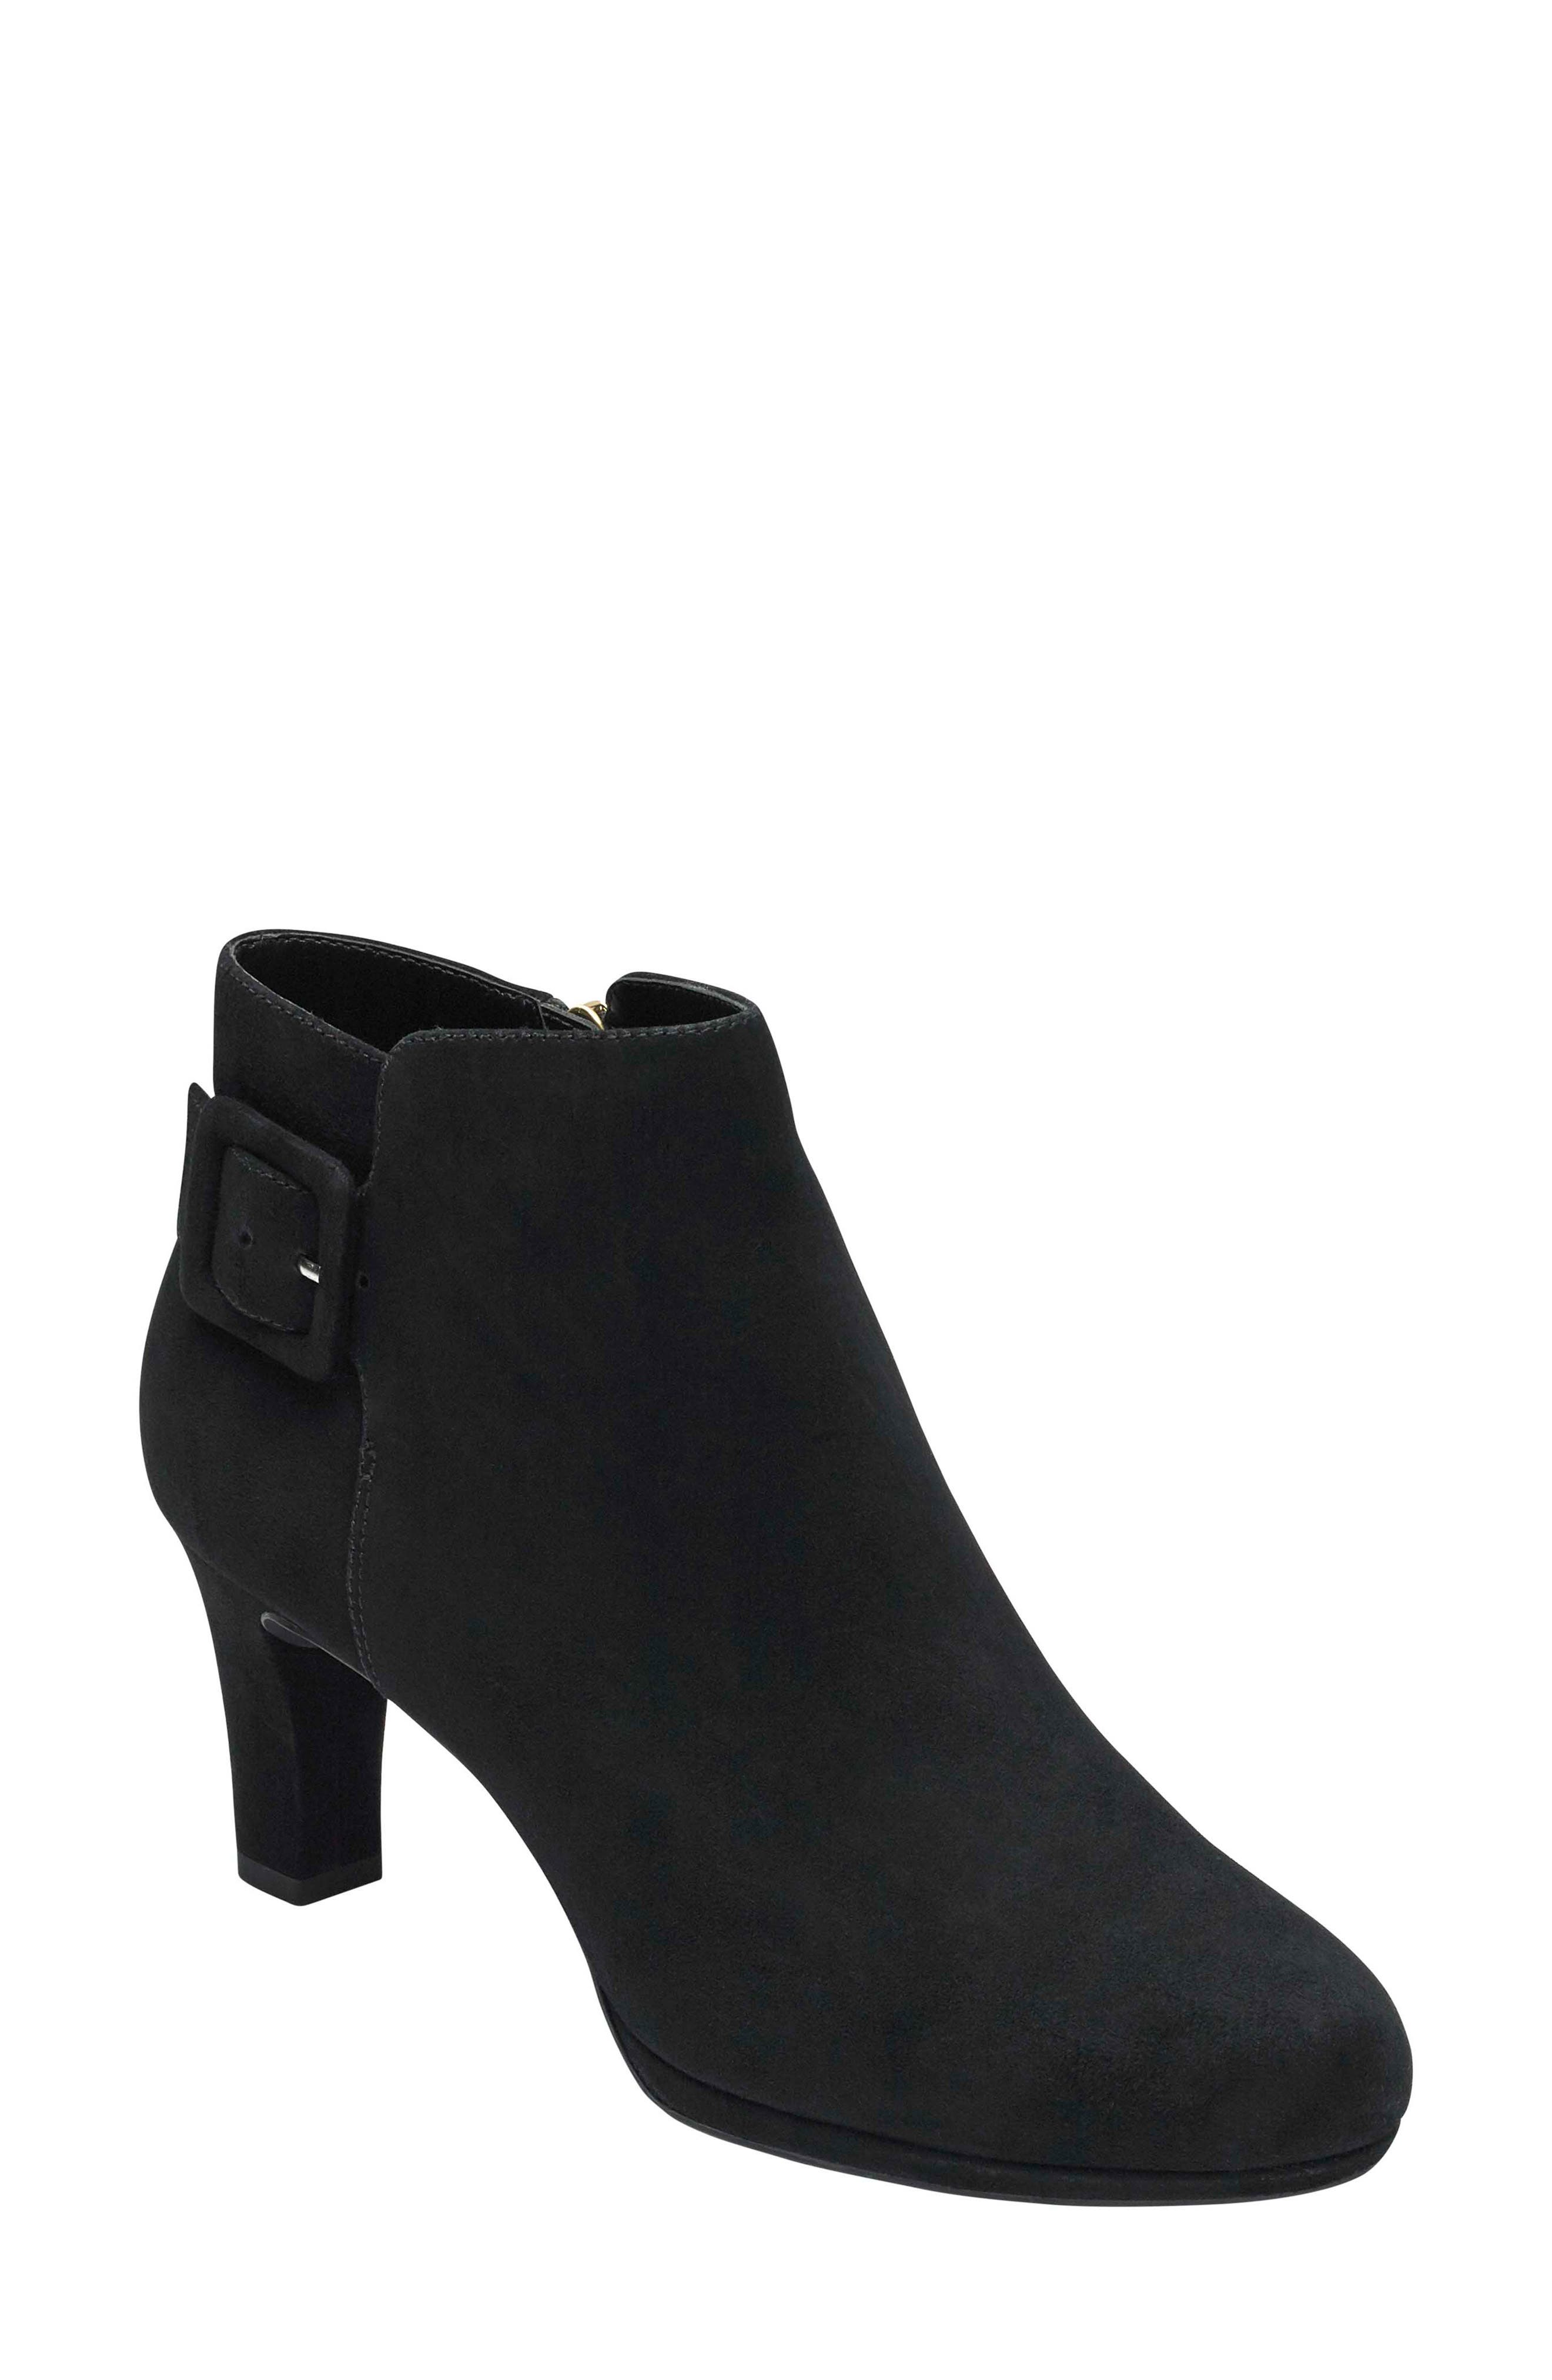 Total Motion Leah Bootie,                             Main thumbnail 1, color,                             BLACK SUEDE